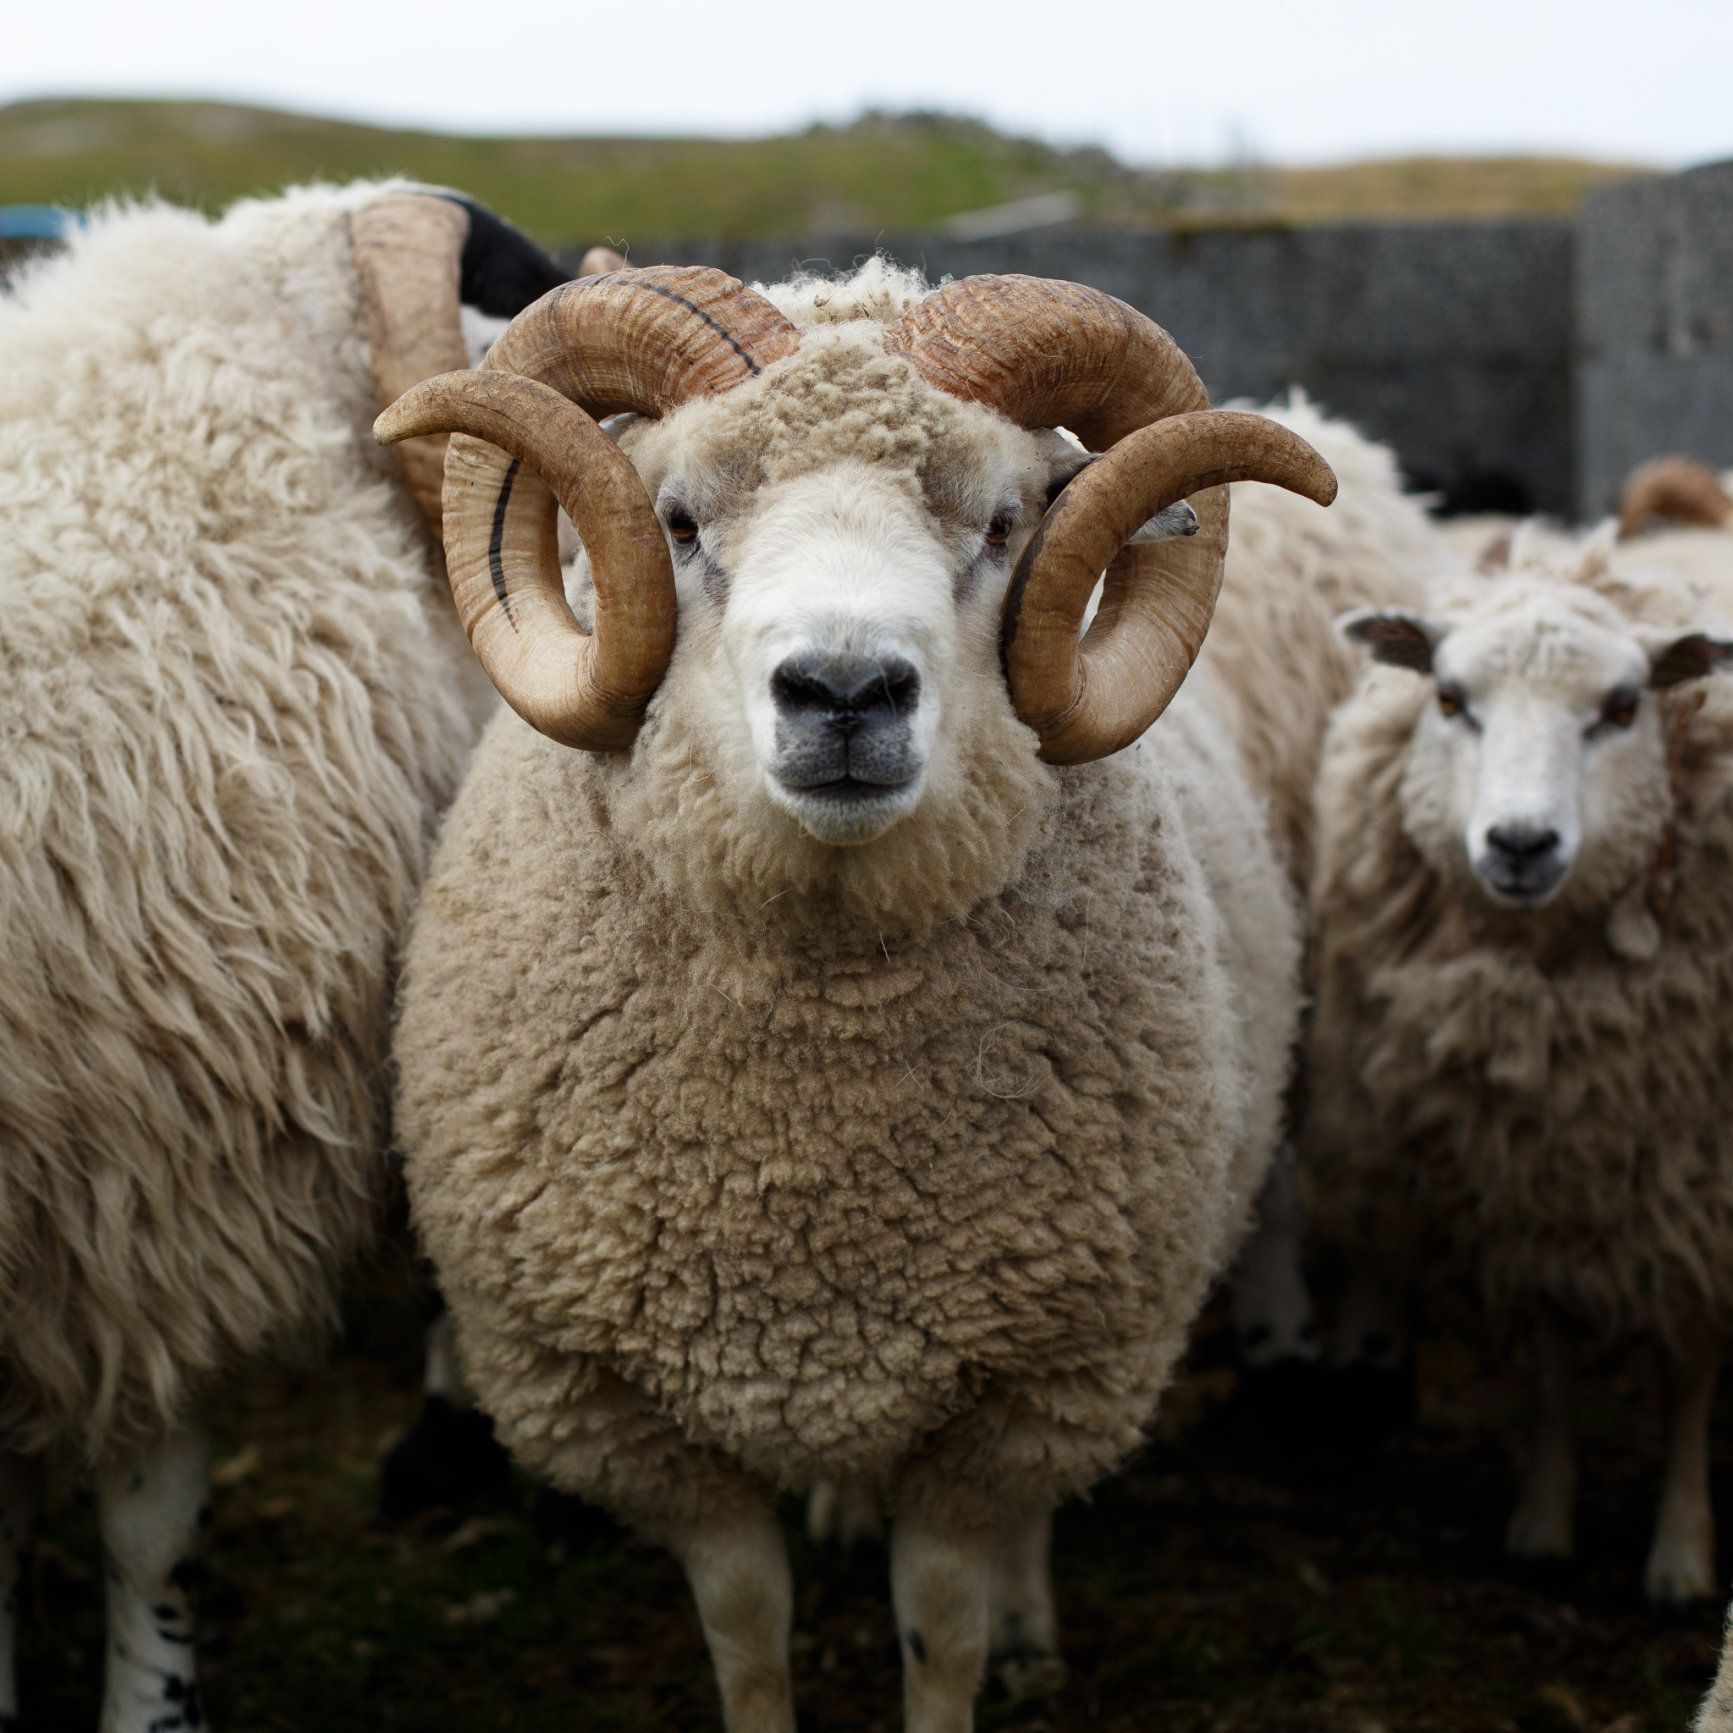 Man 'Wrestles' Ram In Derbyshire That Is Inflicting 'Reign Of Terror' On